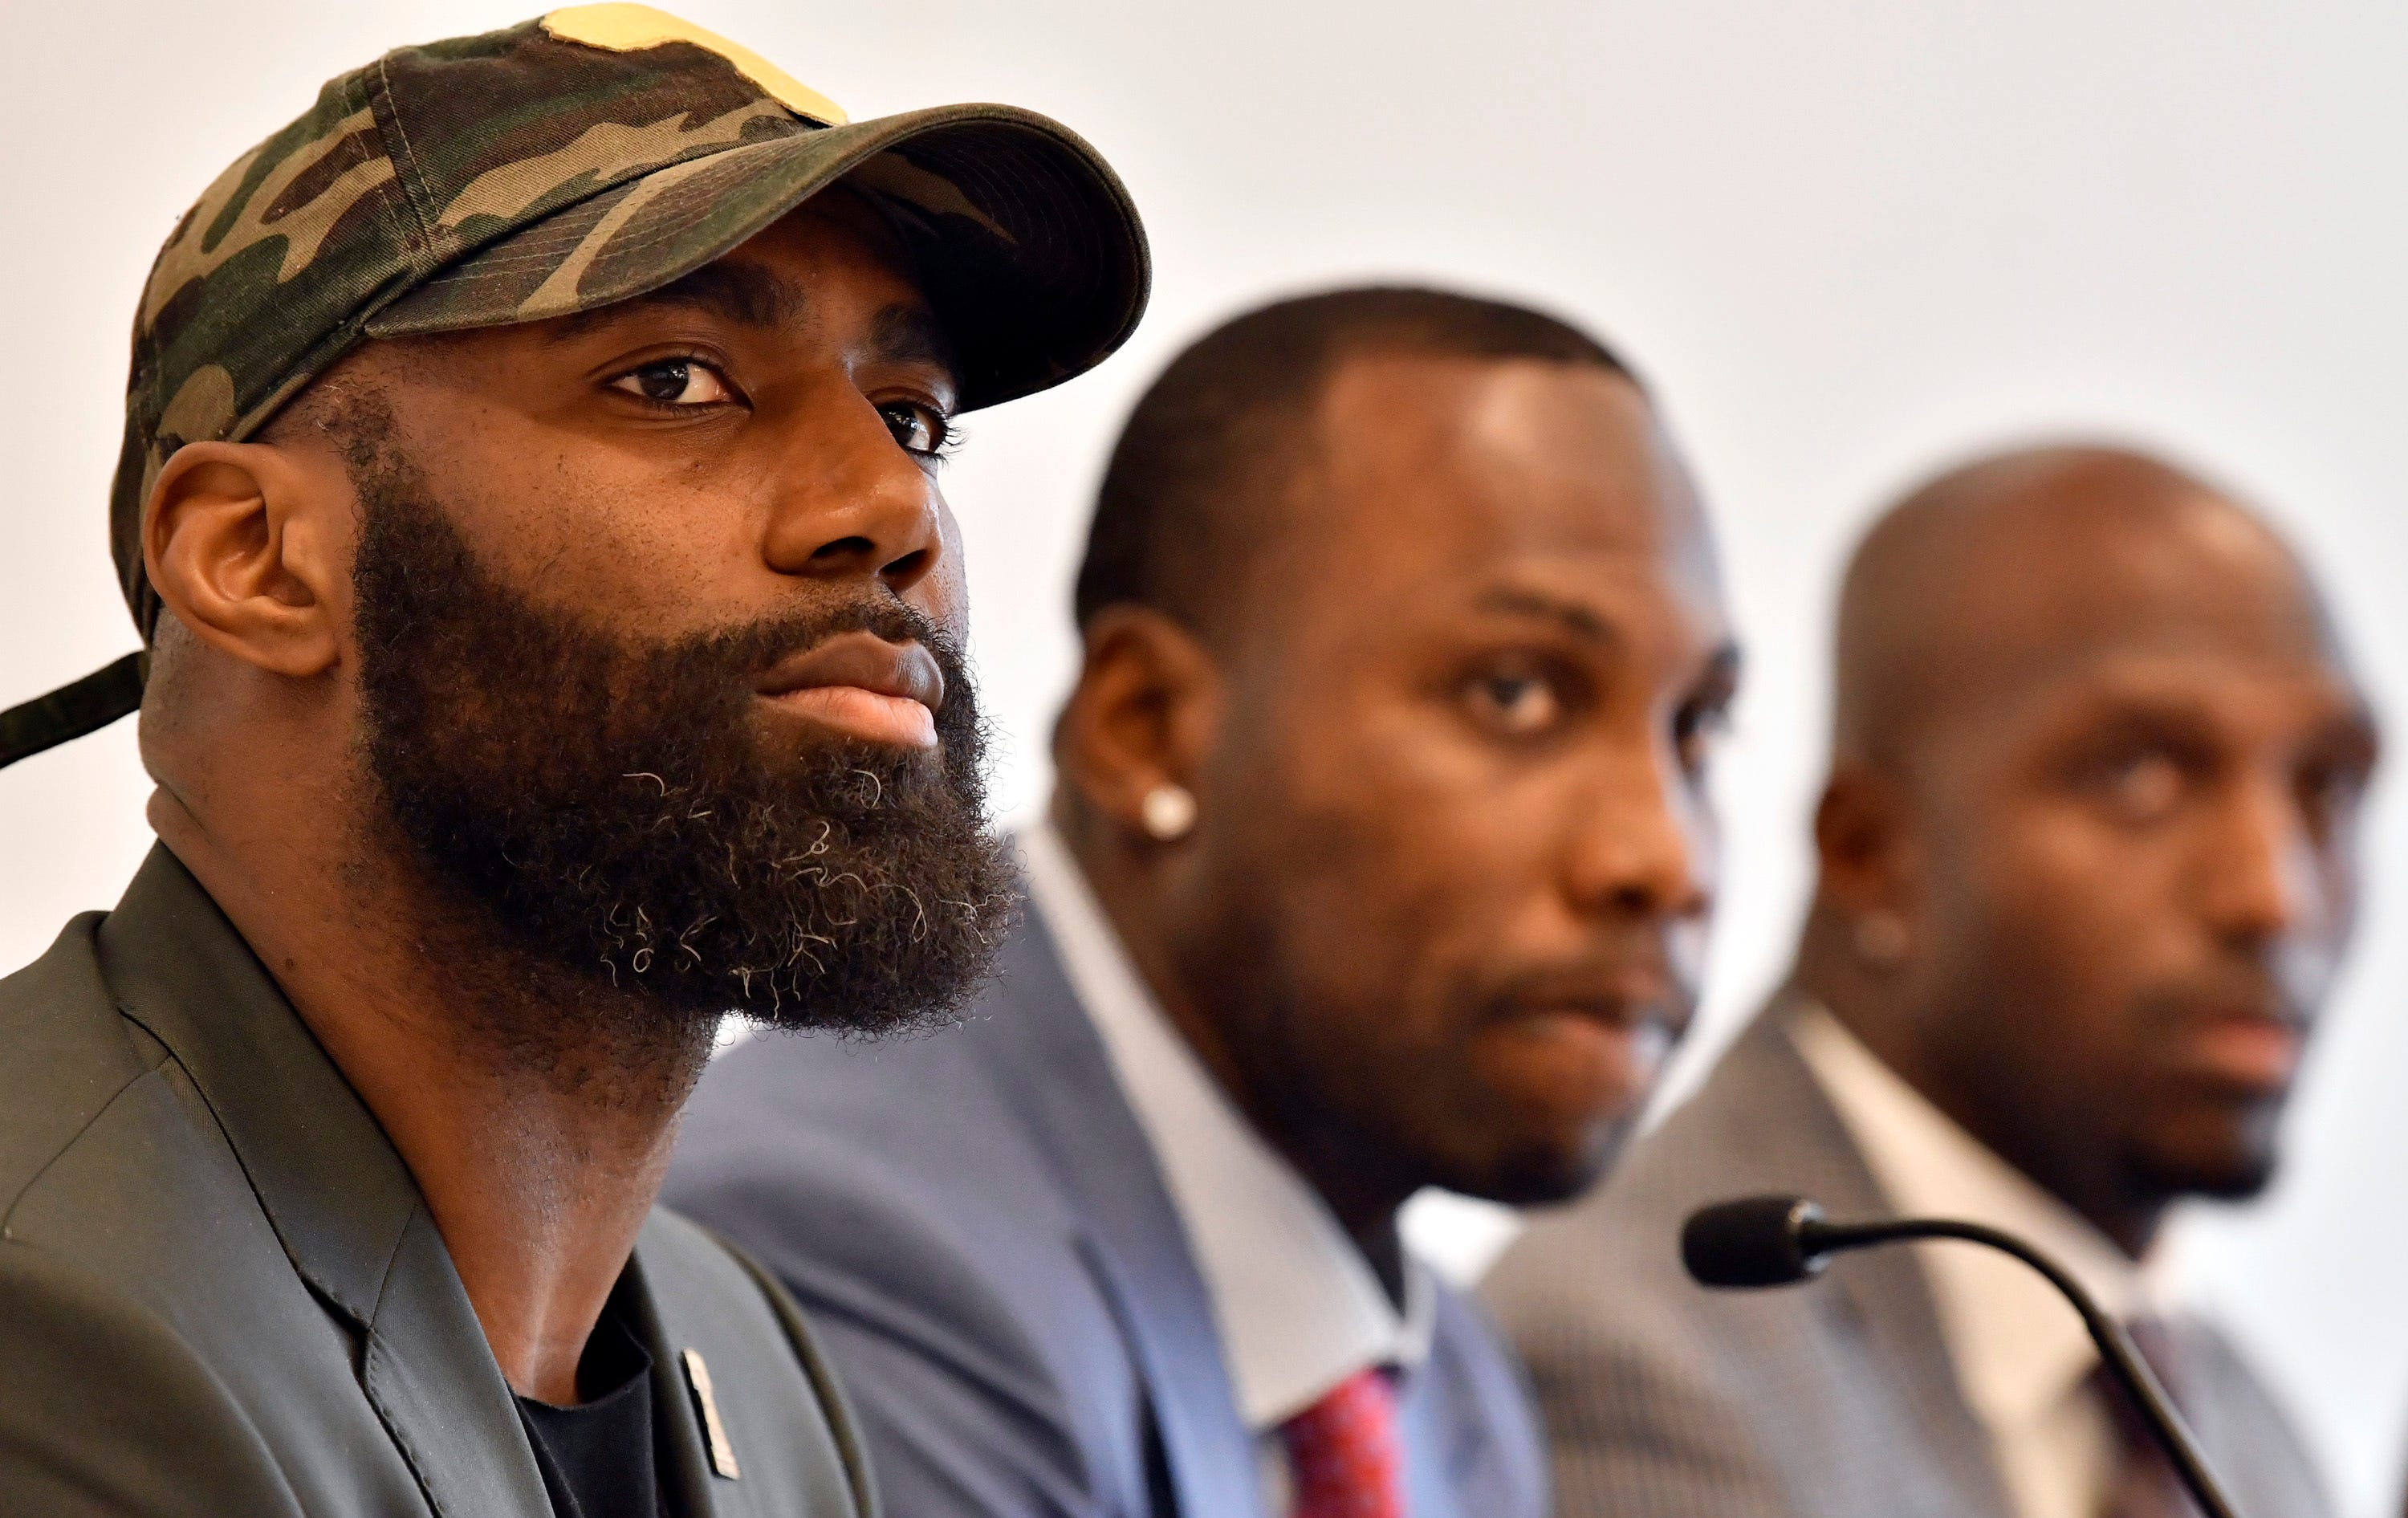 Current, former NFL players push reform message: Break cycles of injustice at the voting booth